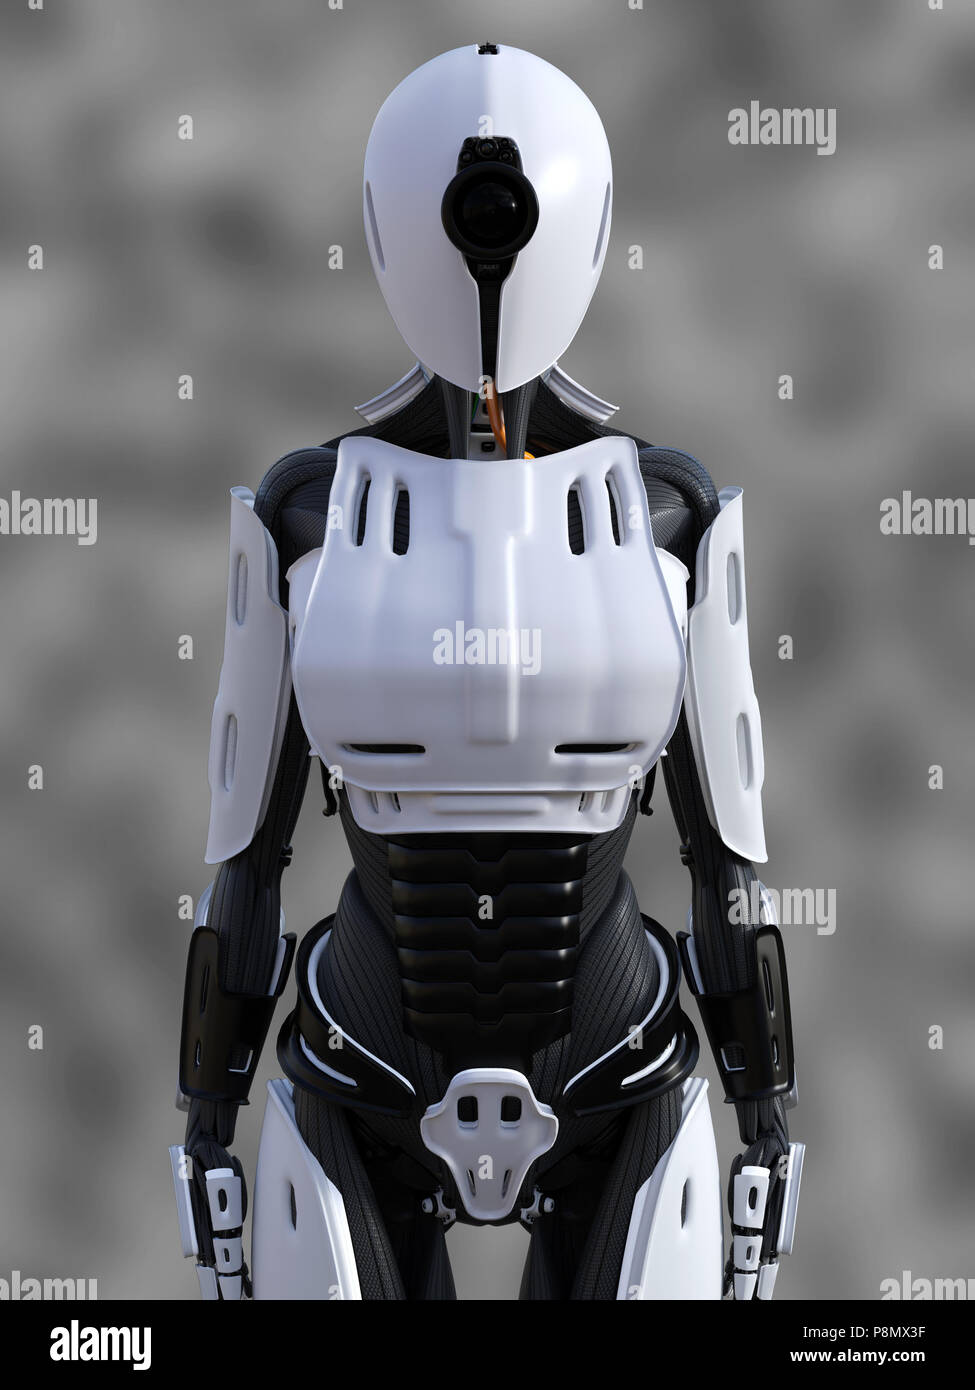 3D rendering of a female android robot standing against a gray background. - Stock Image